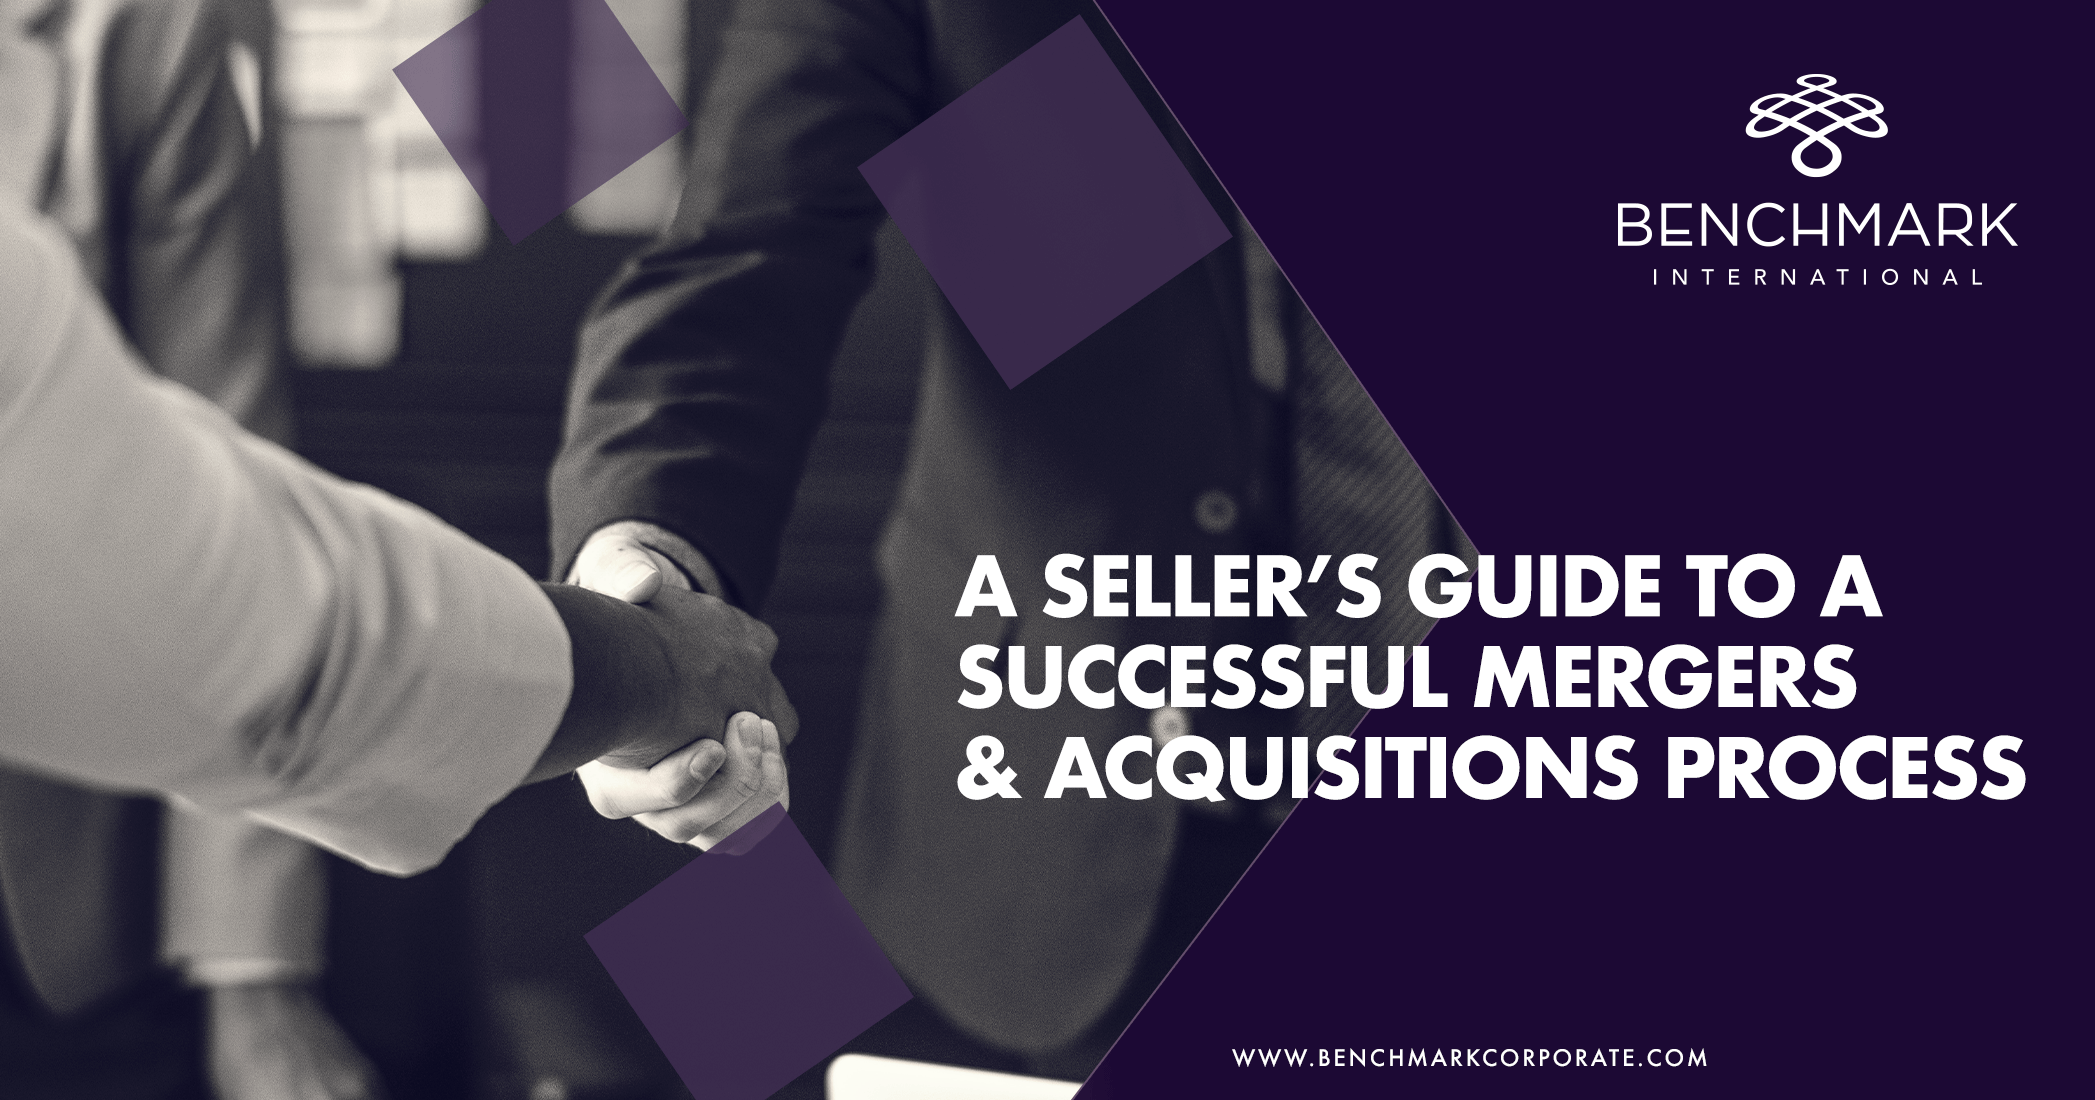 A Seller's Guide to a Successful Mergers & Acquisitions Process